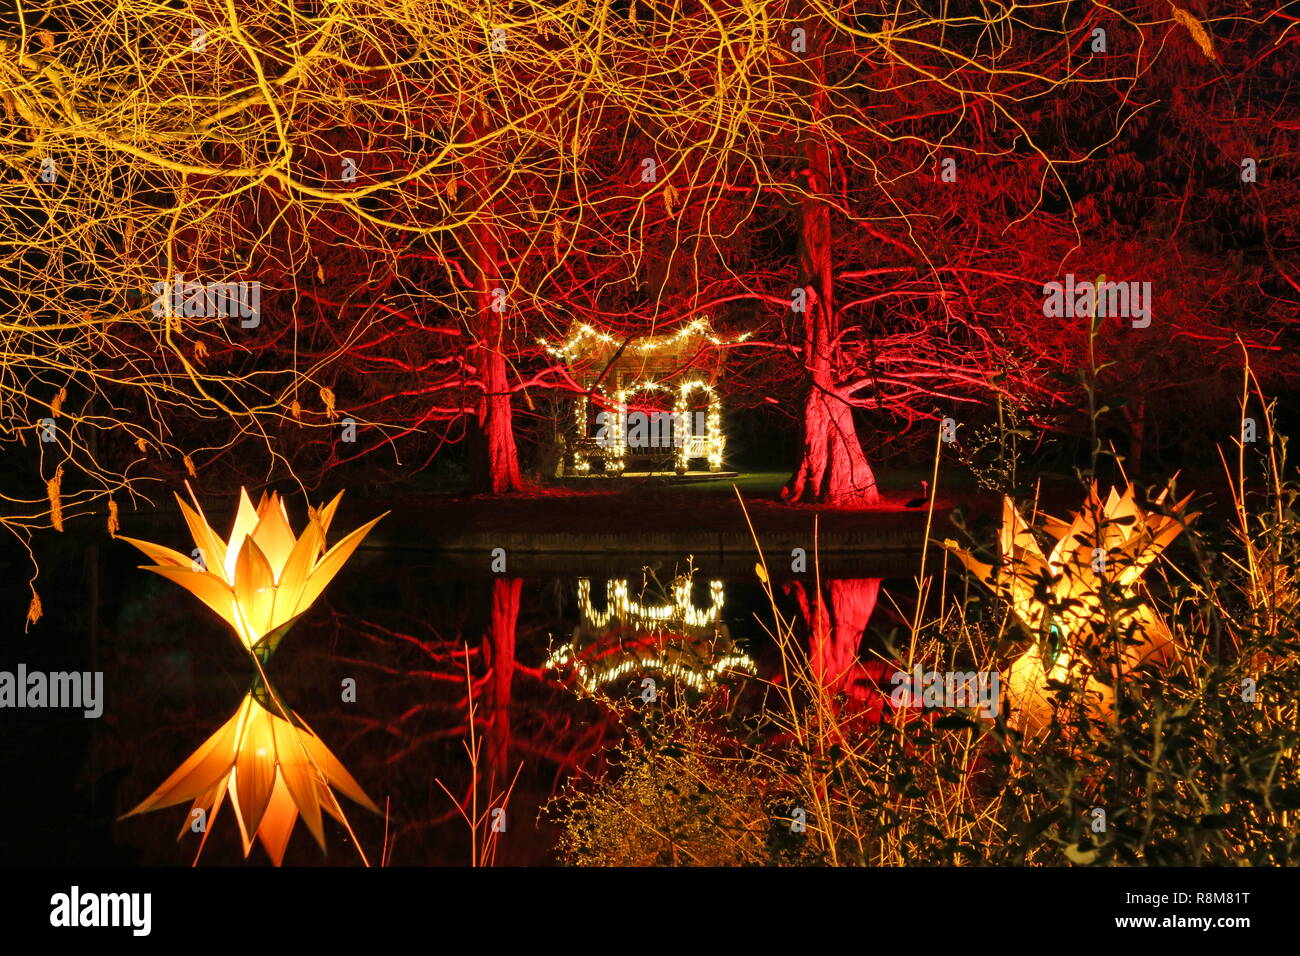 Christmas Glow 2018, Seven Acres lake and Pagoda. RHS Garden Wisley, Woking, Surrey, England, UK, Europe. - Stock Image